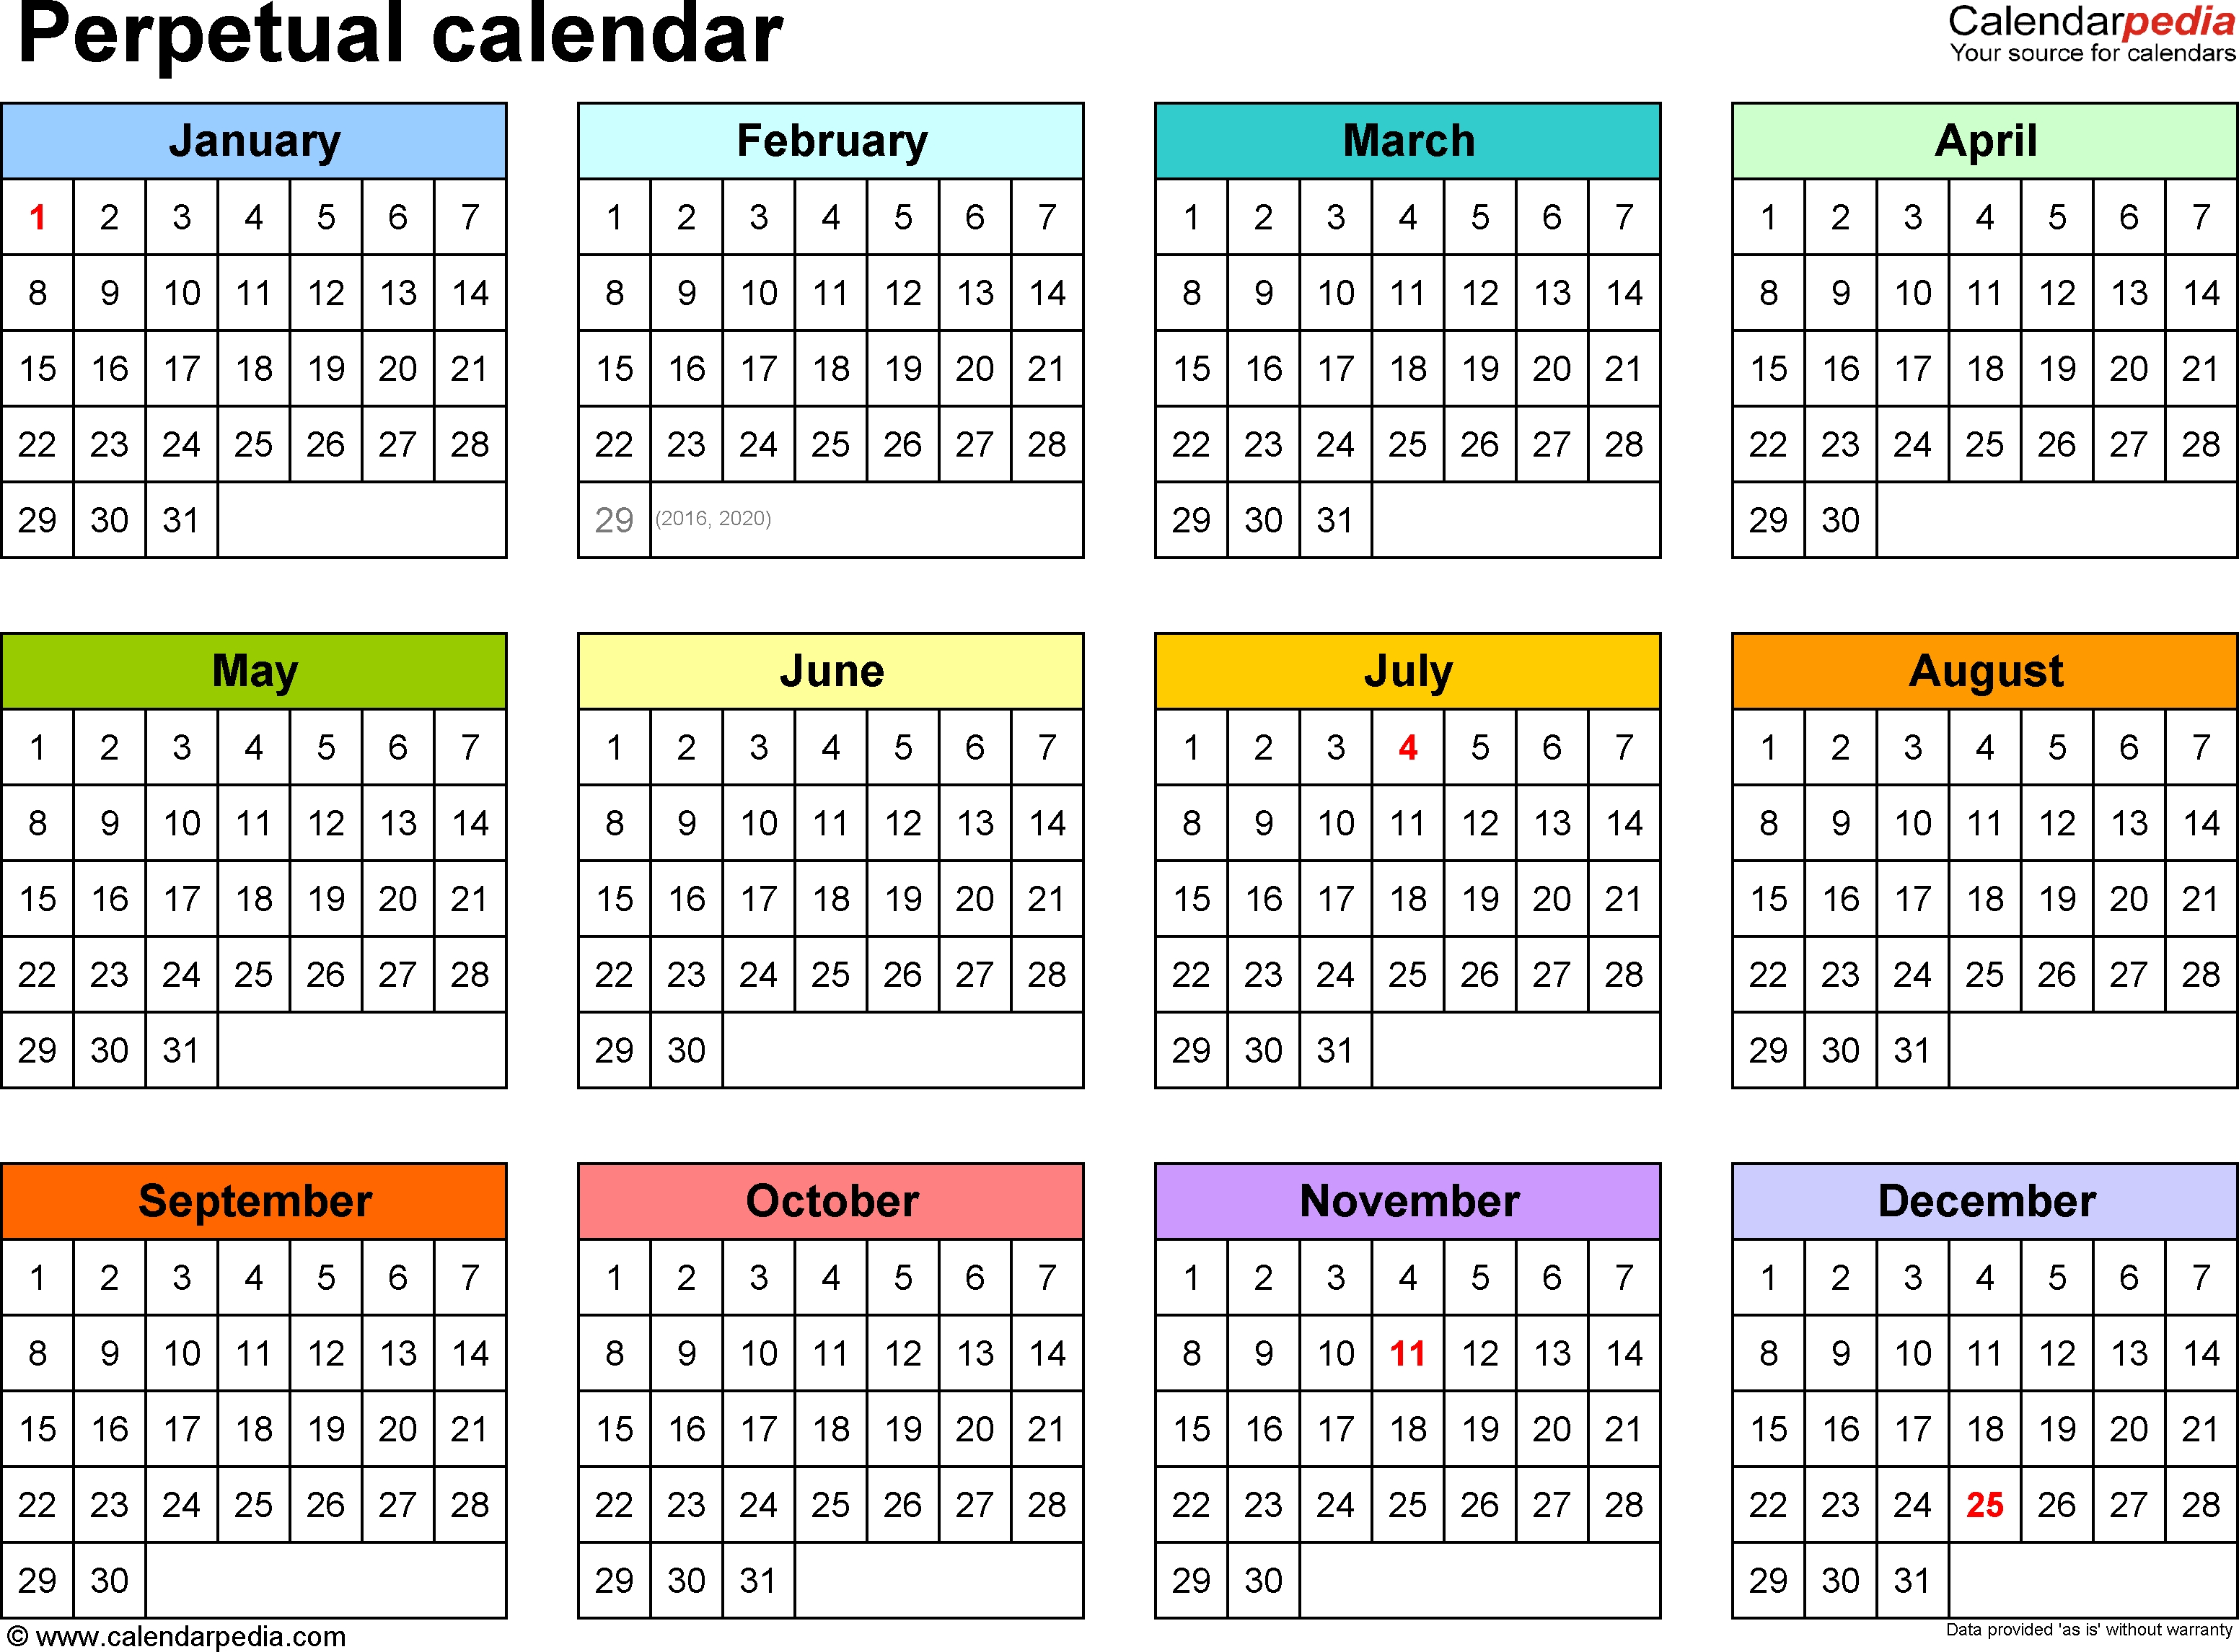 Perpetual Calendars - 7 Free Printable Word Templates_Blank Calendar No Year